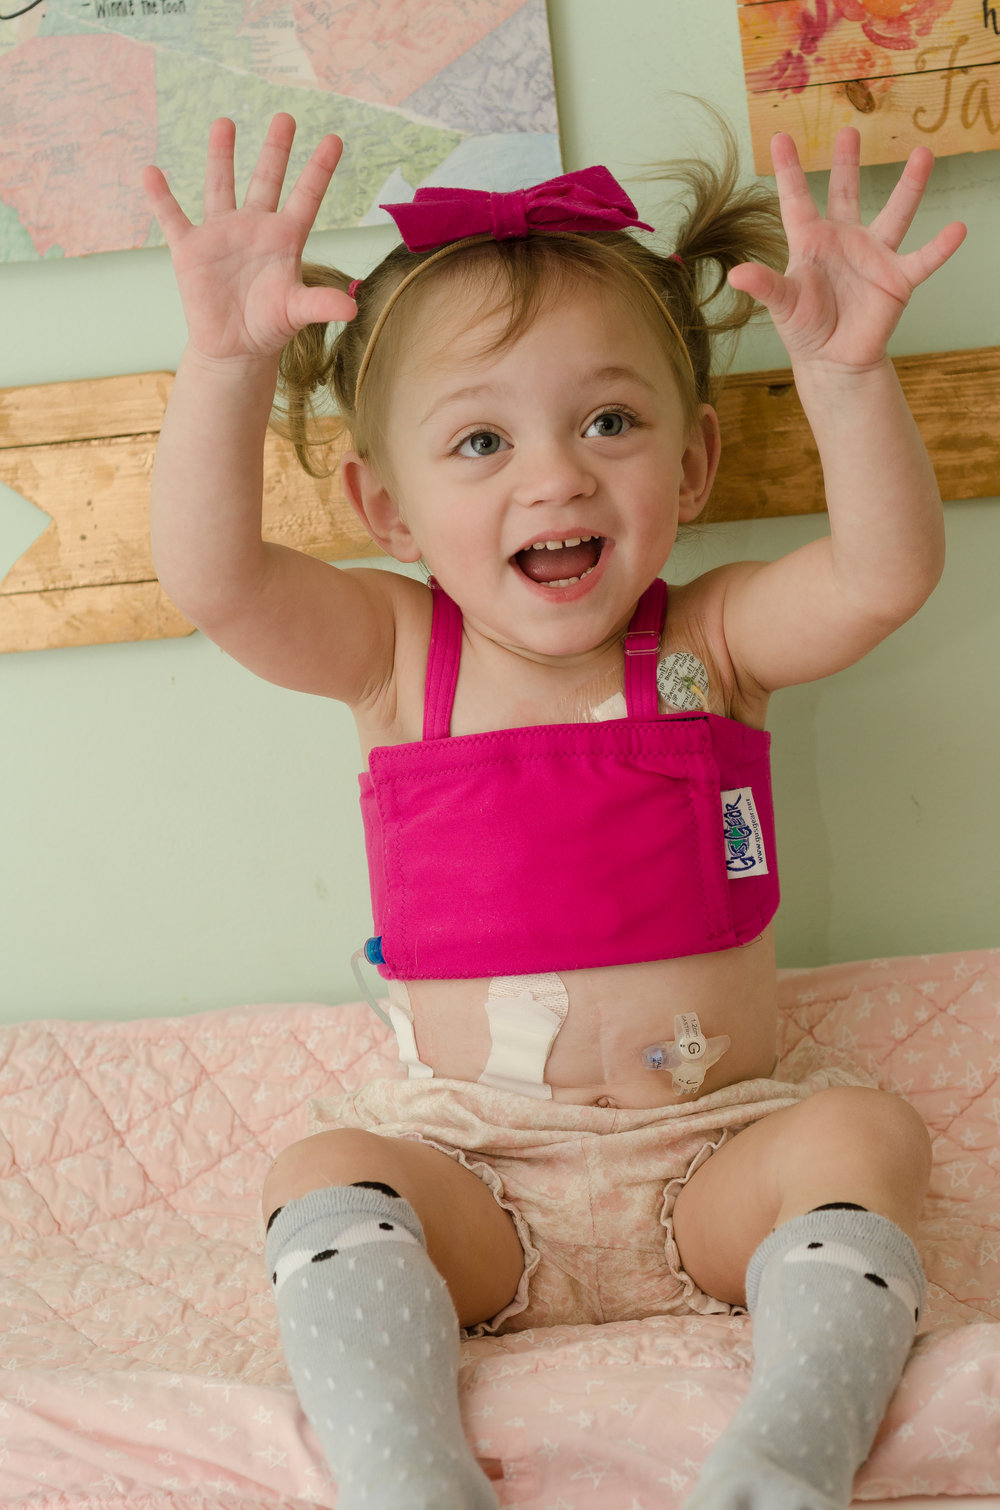 6. Keeps Line Out of Her Hands - Instead of her line hanging directly in front of her, right near her heart, the central line wrap puts it it off to the side. It helps keep it away from those wild yummy hands. The Gus Gear literally covers the line, which keeps it out of sight and out of hands.